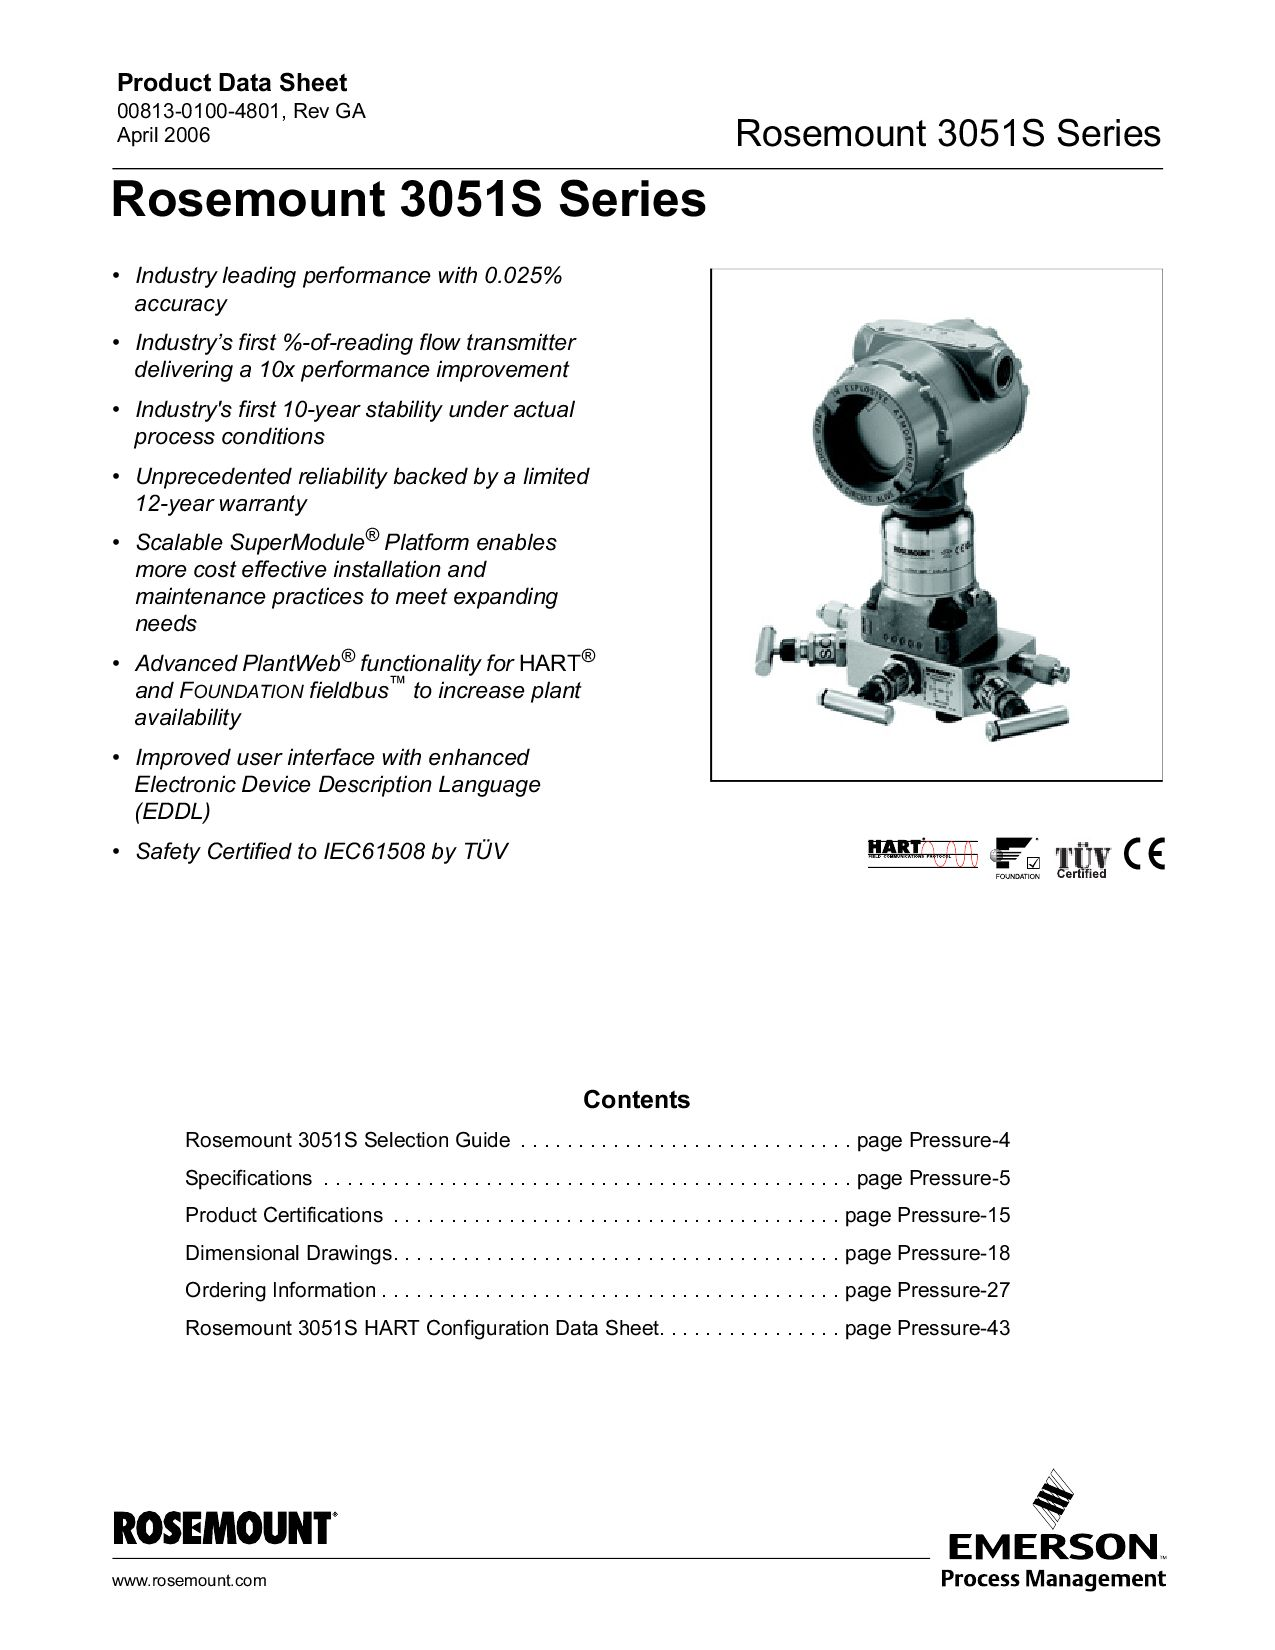 Rosemount 3051S Series - APril 2006 by luppo luppo - issuuIssuu